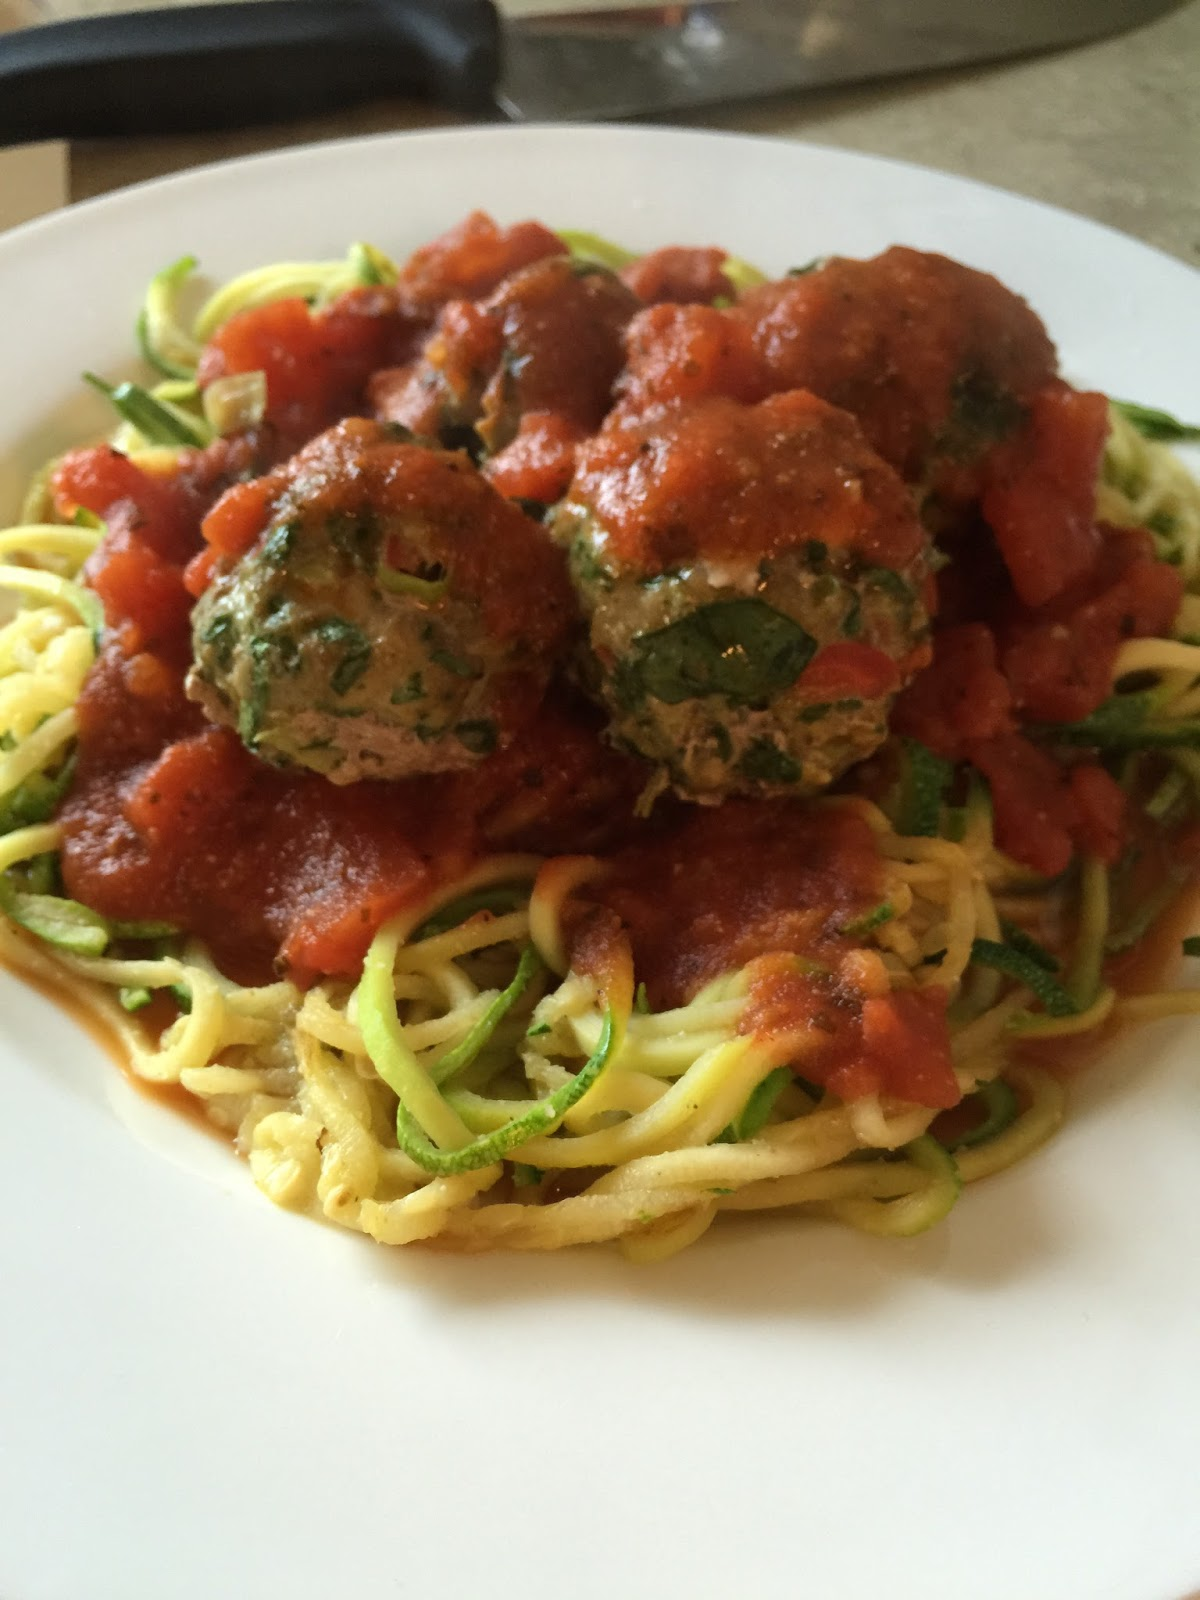 Highly experimental fmd garden meatballs with easy sauce for Zucchini noodles and meatballs recipe